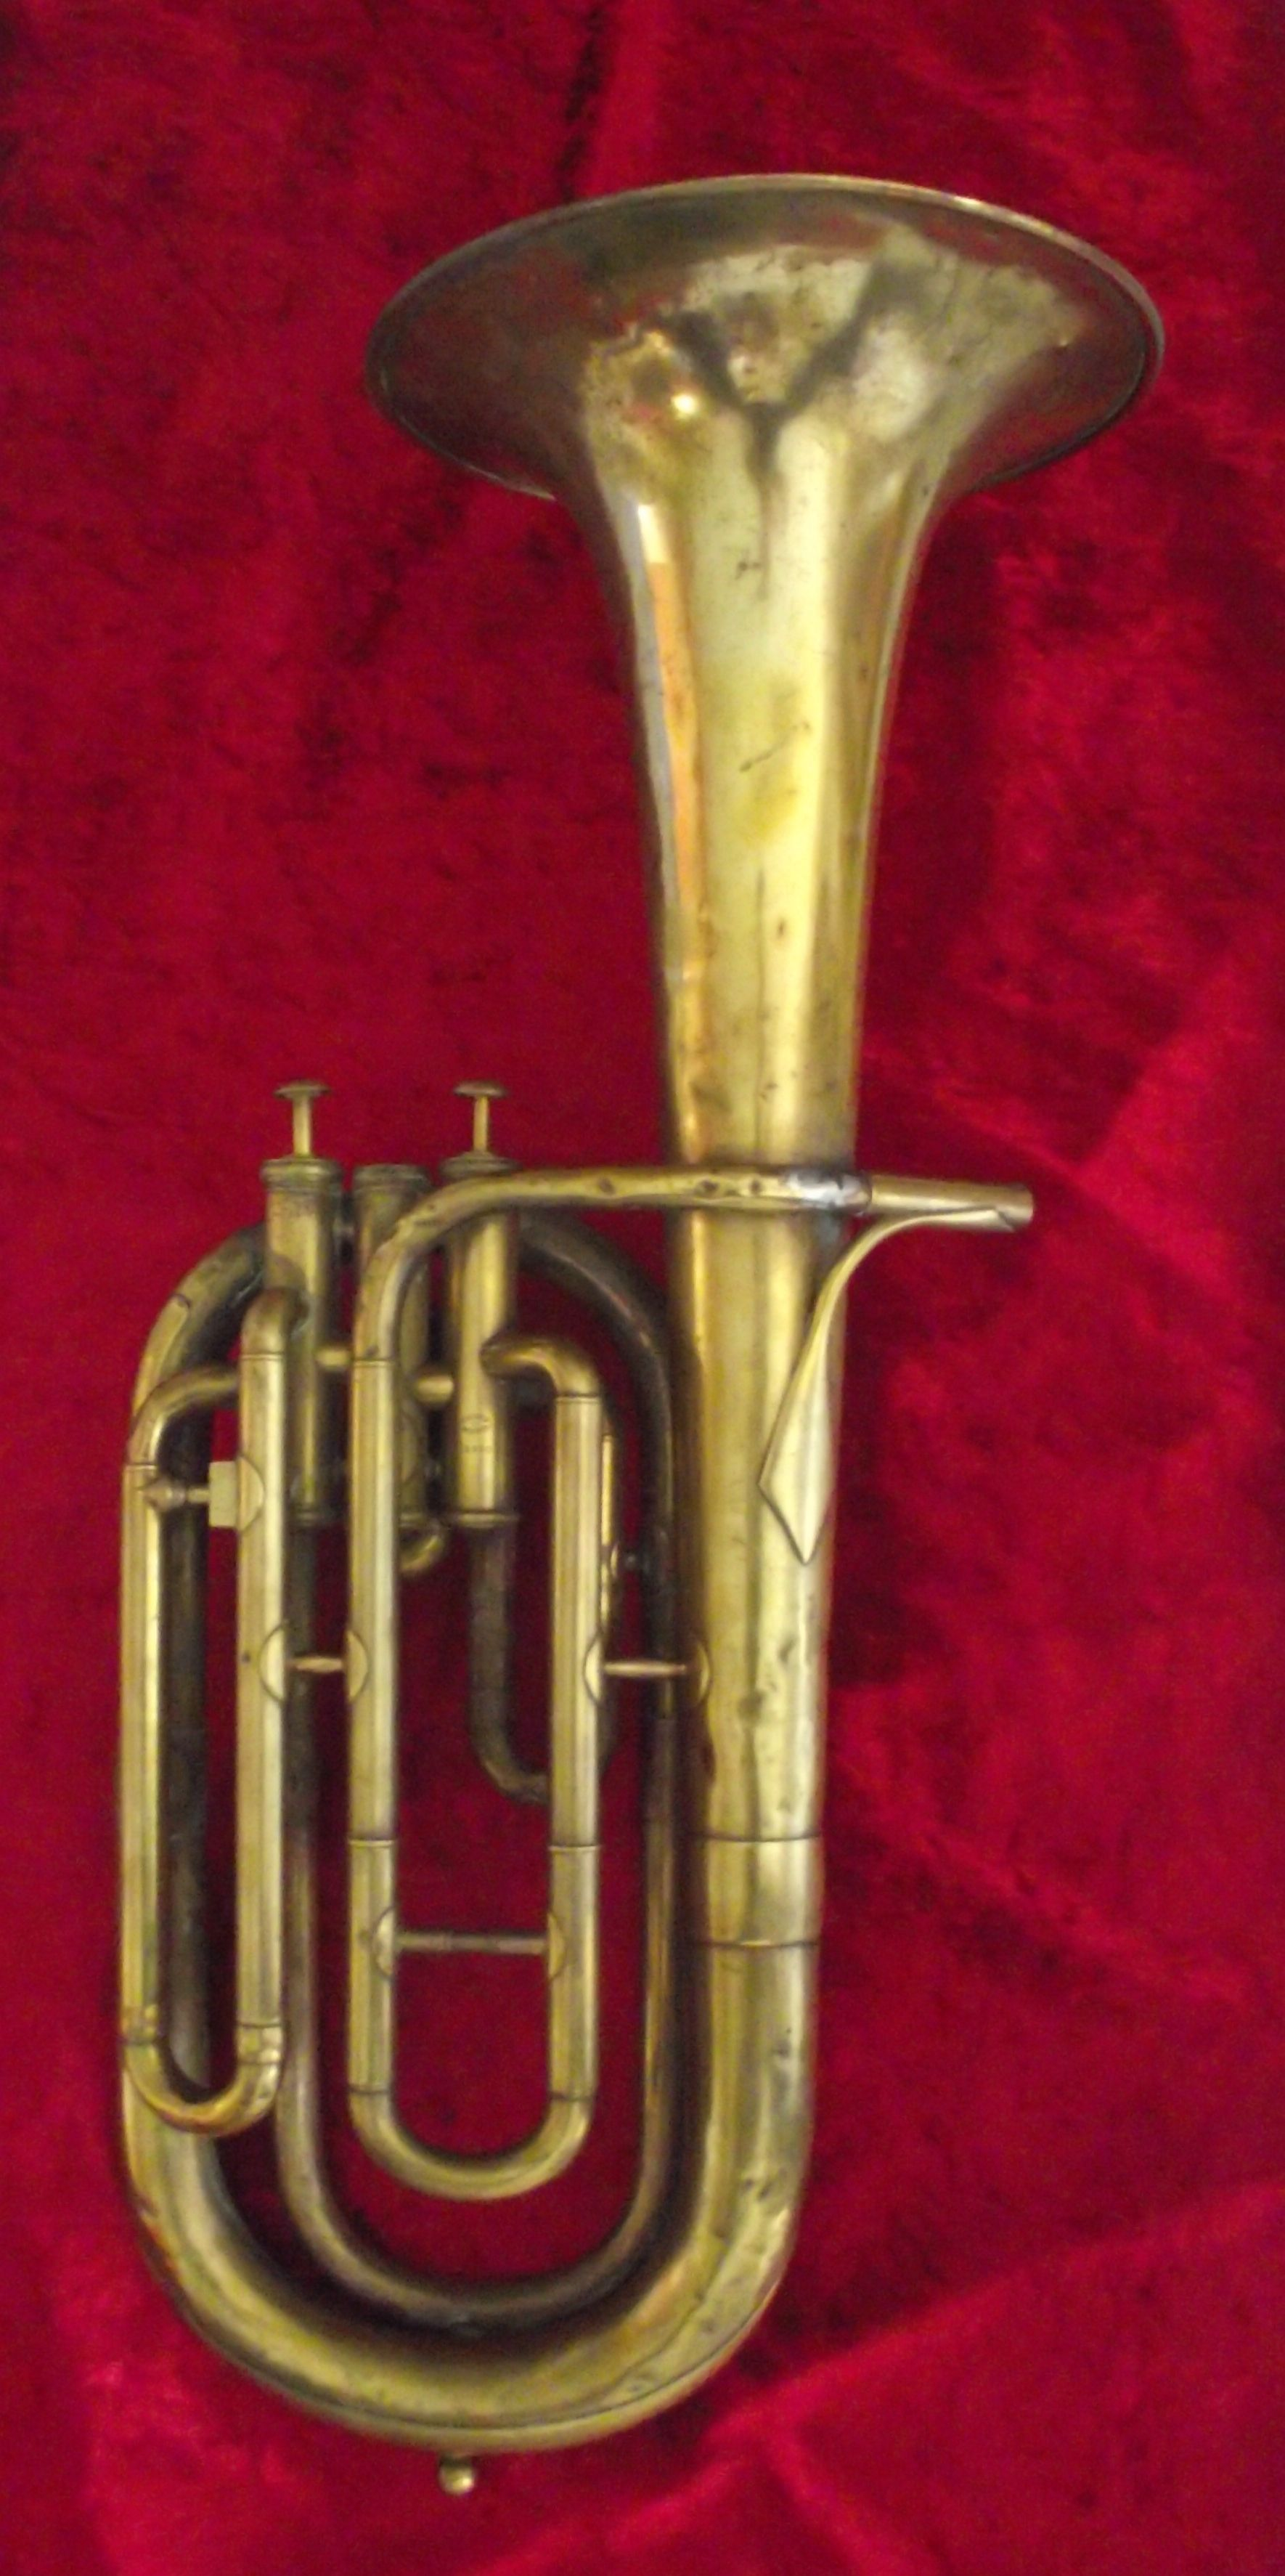 saxhorn f.besson -paris,france- | musical instruments | pinterest